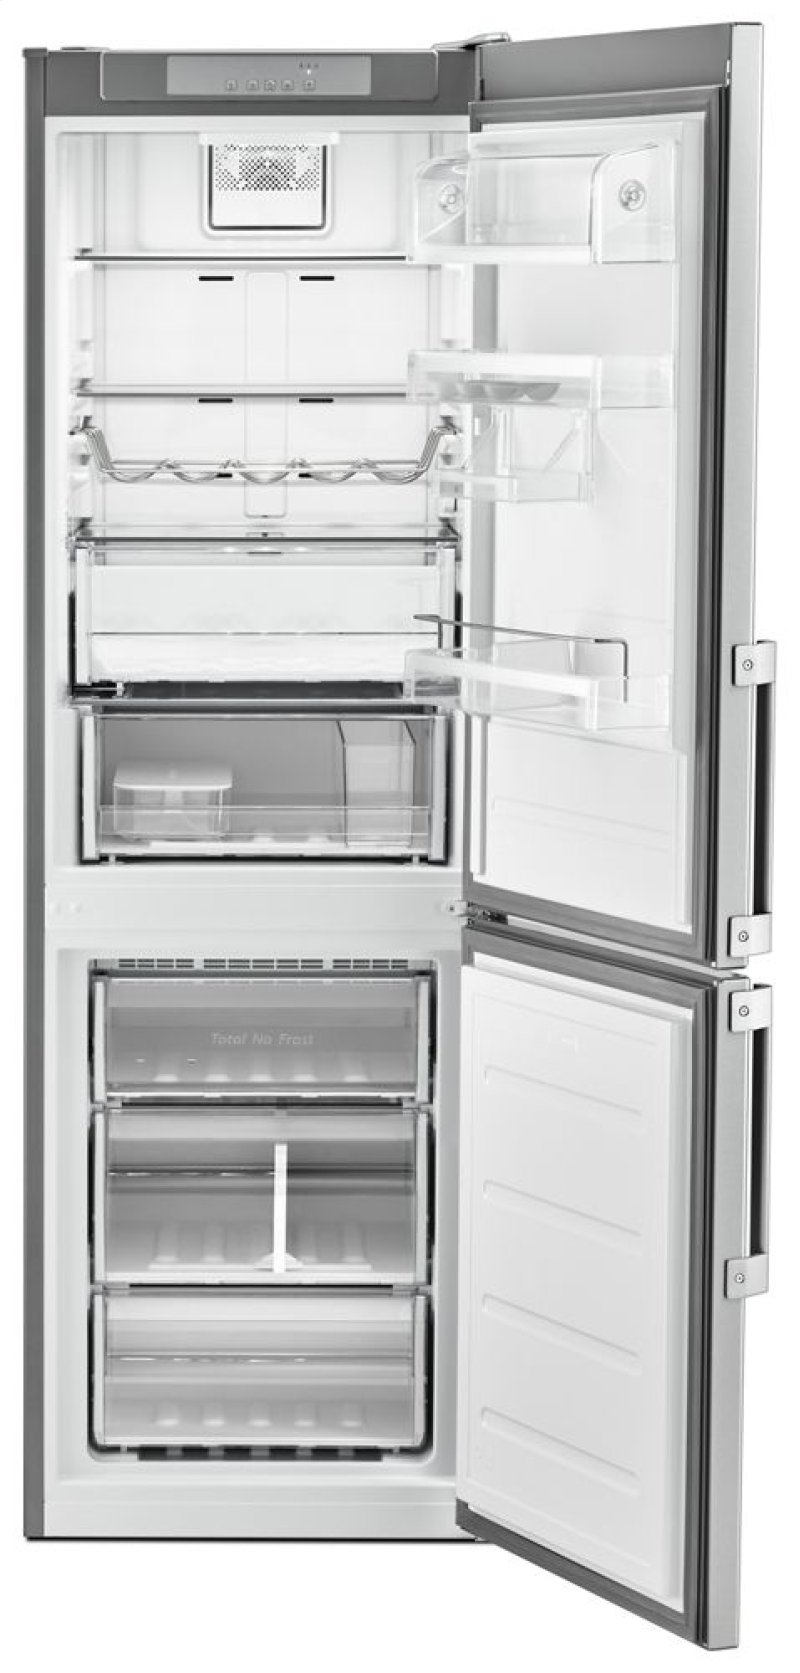 Bottom Mount Refrigerator 24 Inches Wide